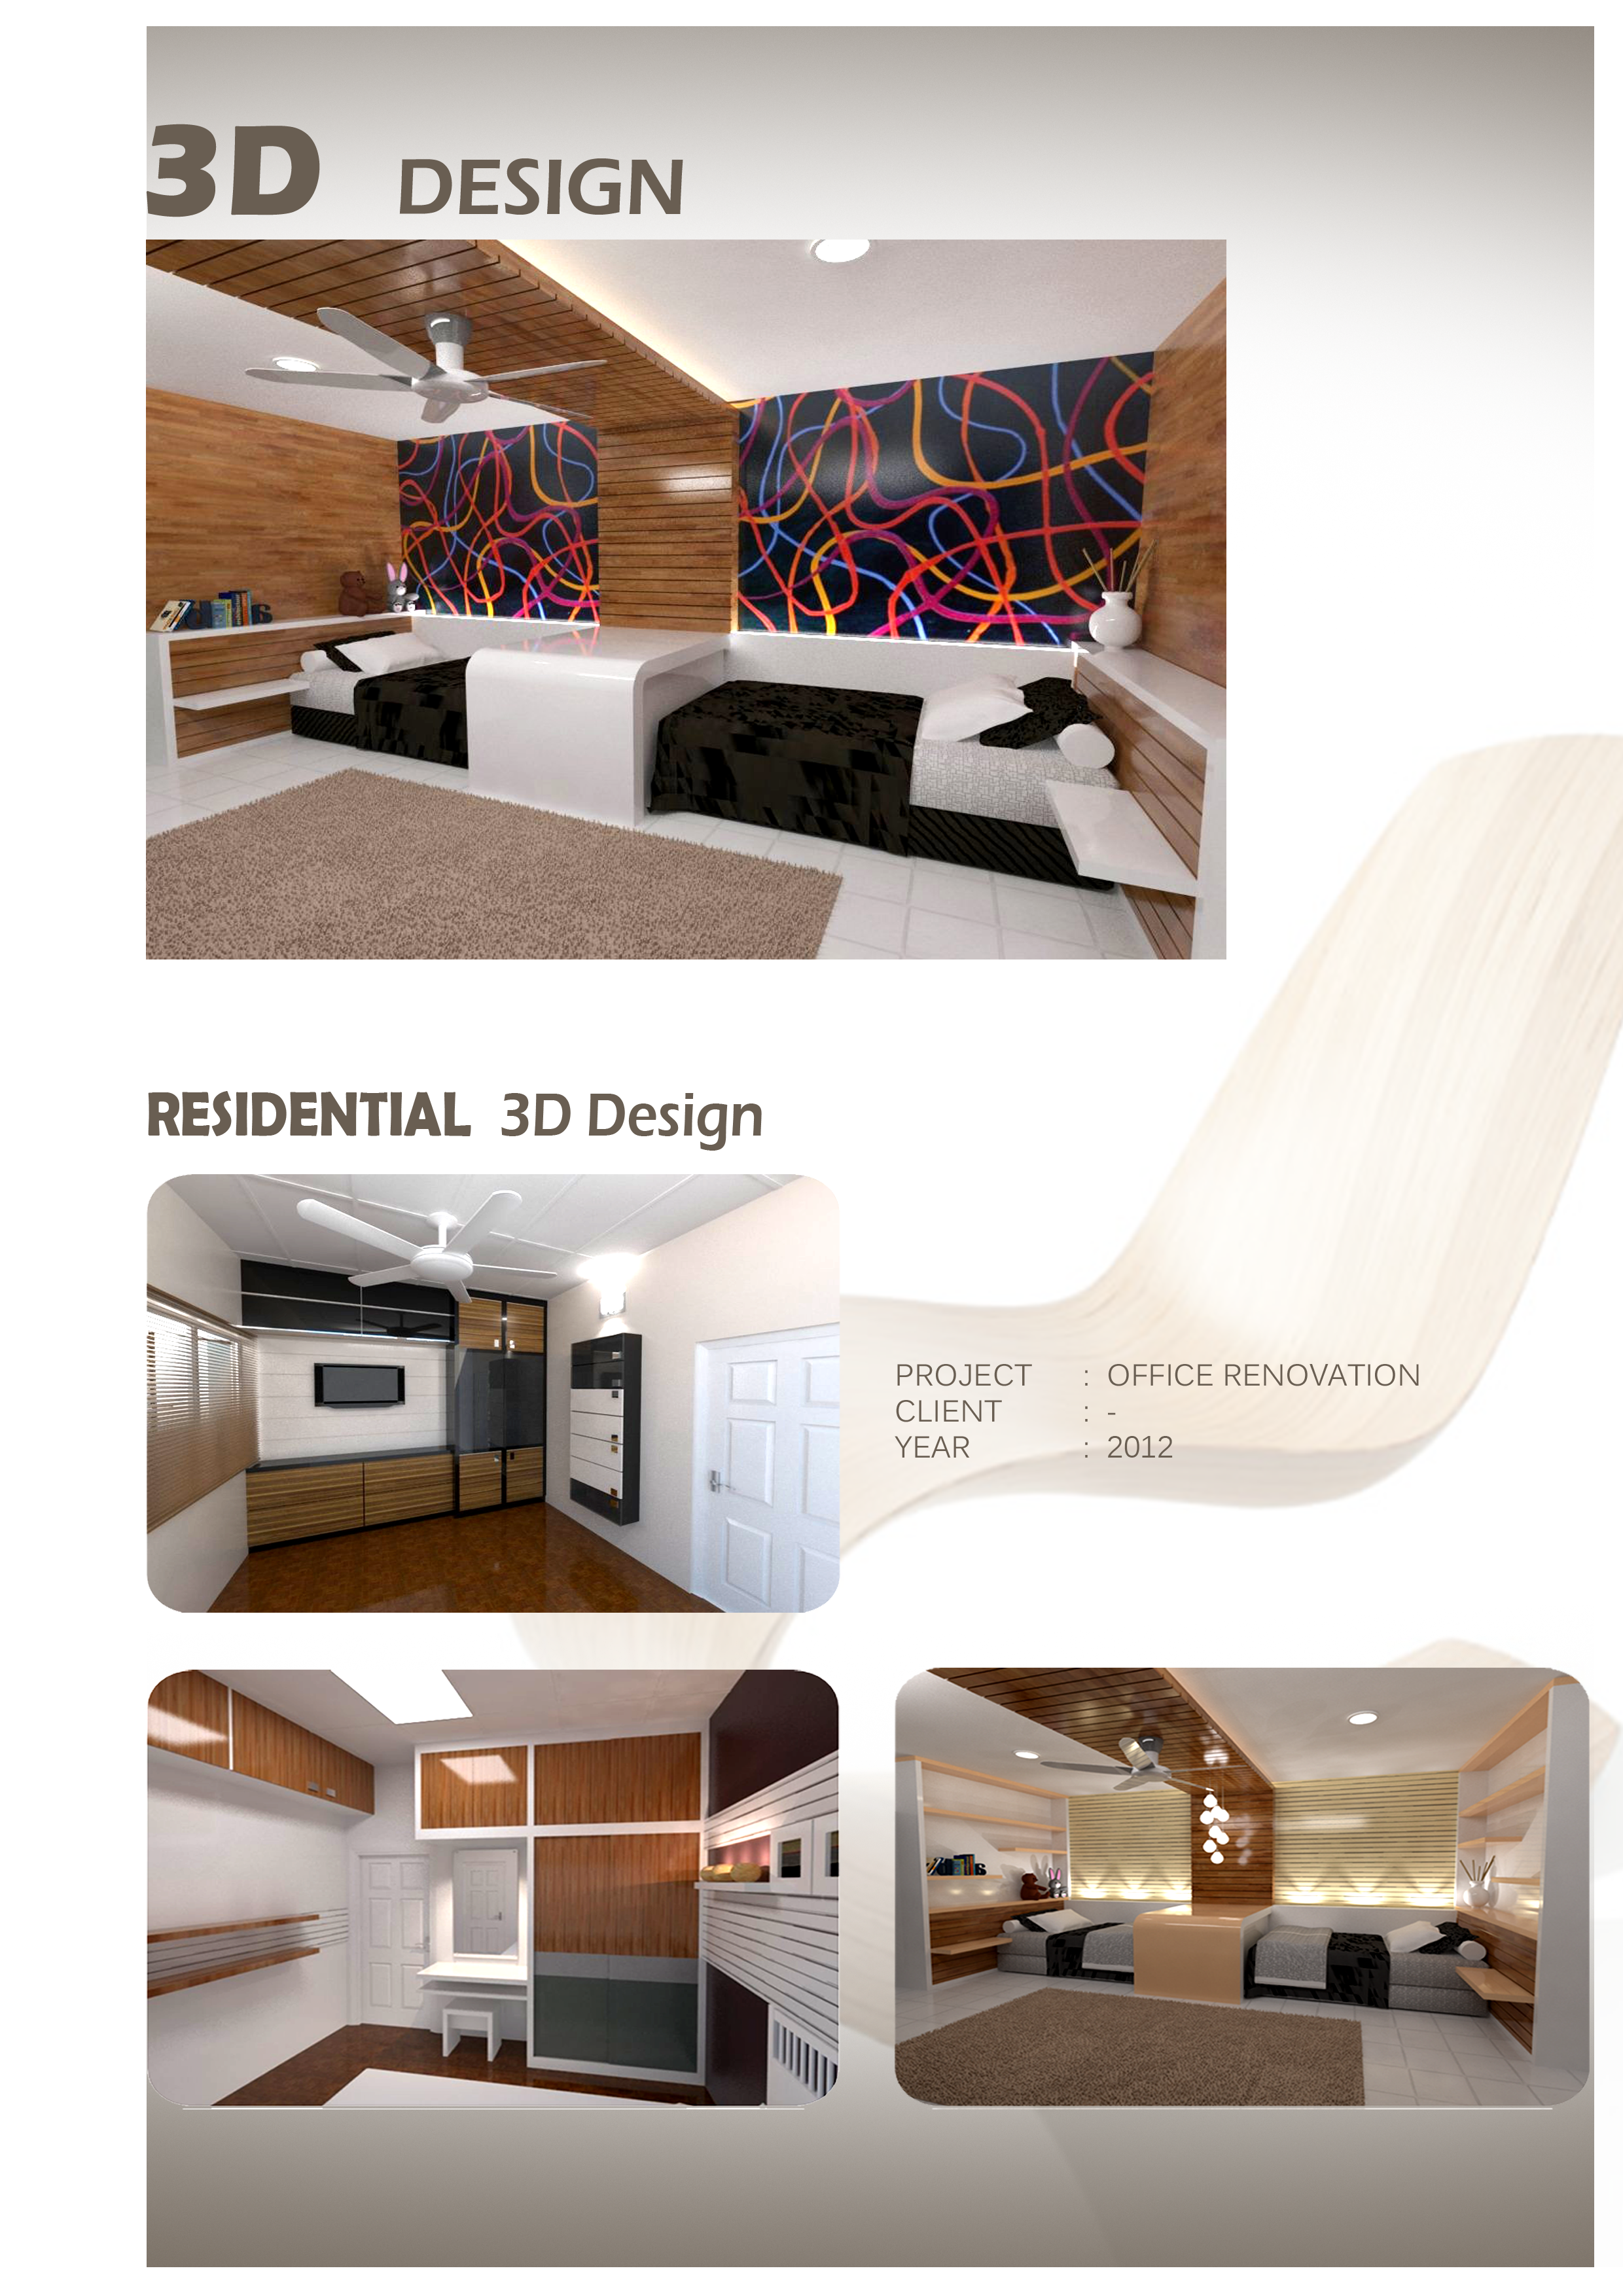 3d residential design n i interior design furniture for Furniture 3d design